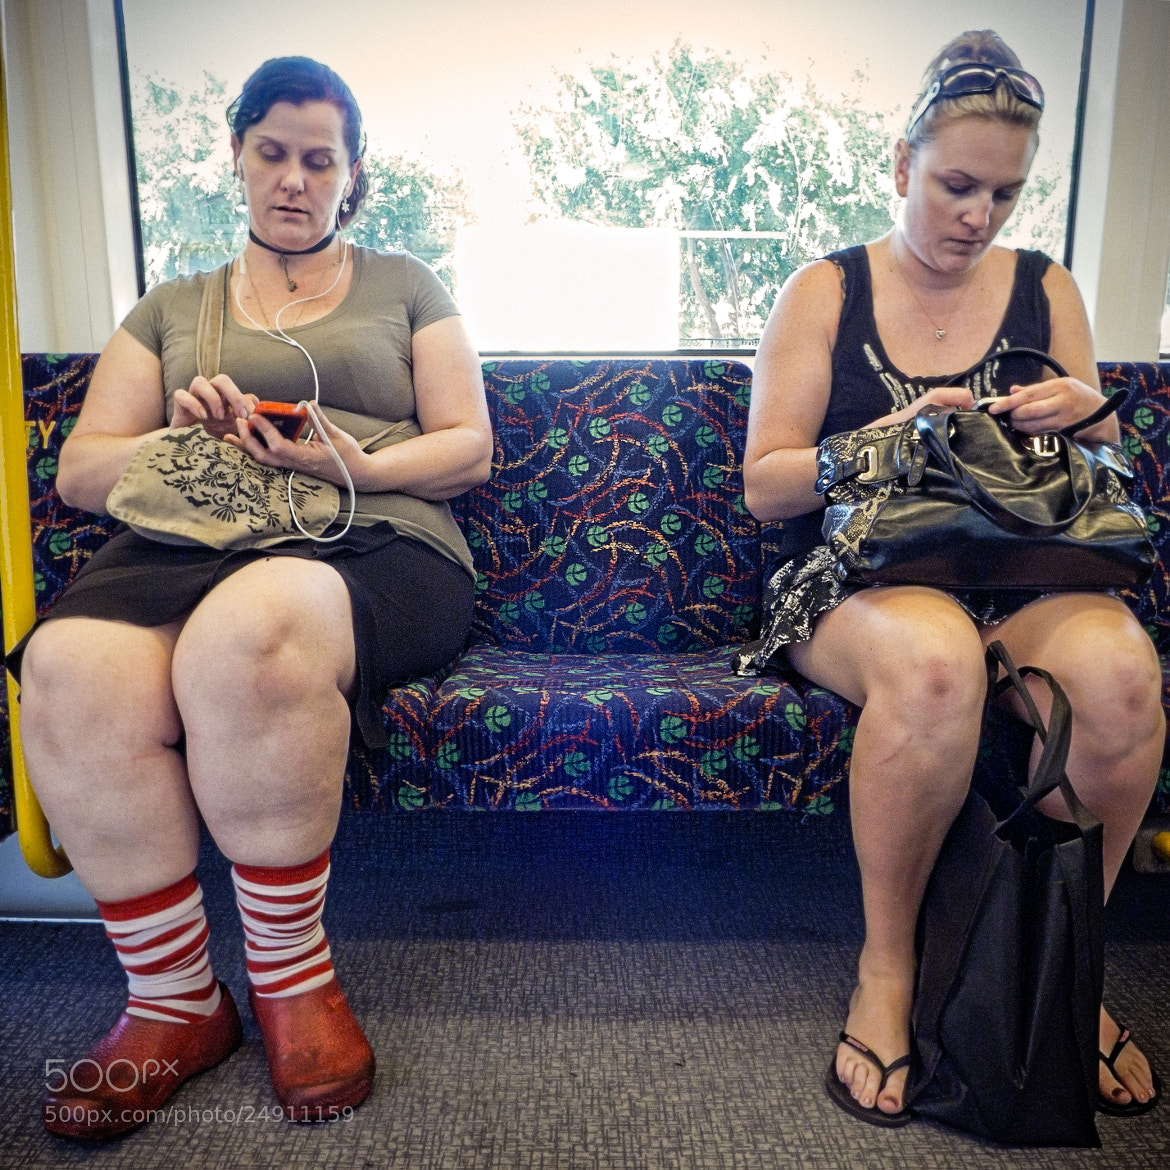 Photograph Commuting by Paul Amyes on 500px